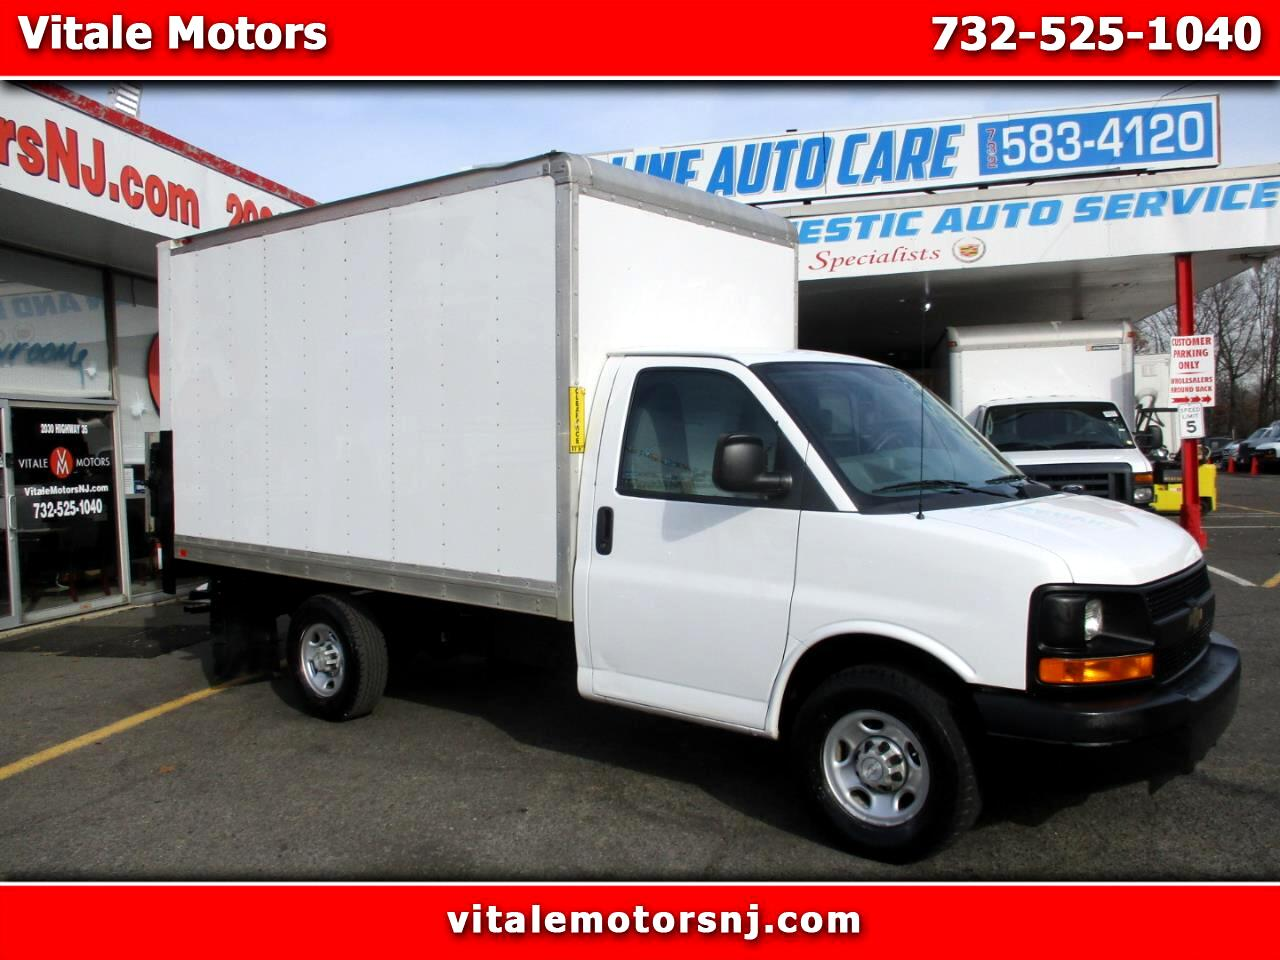 2014 Chevrolet Express 12 FOOT BOX TRUCK SRW LIFTGATE